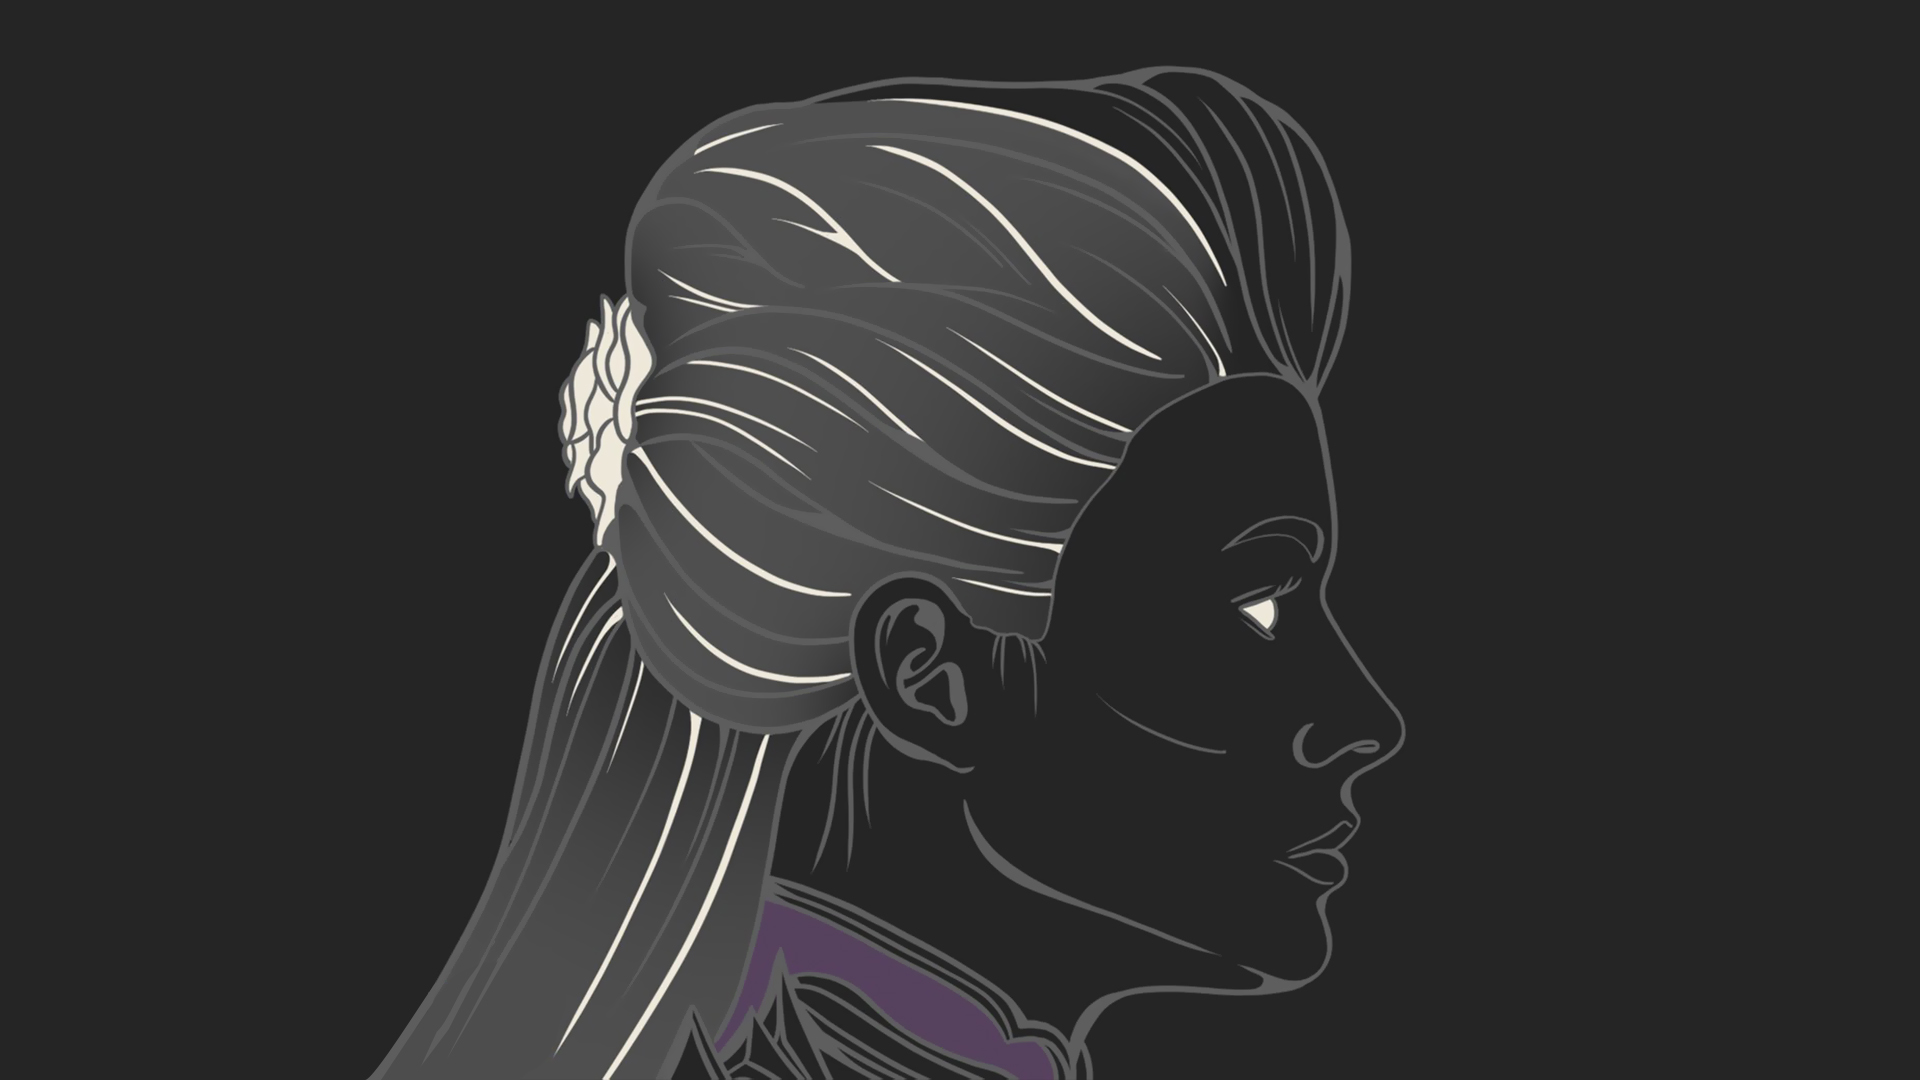 MK11 Sindel Background